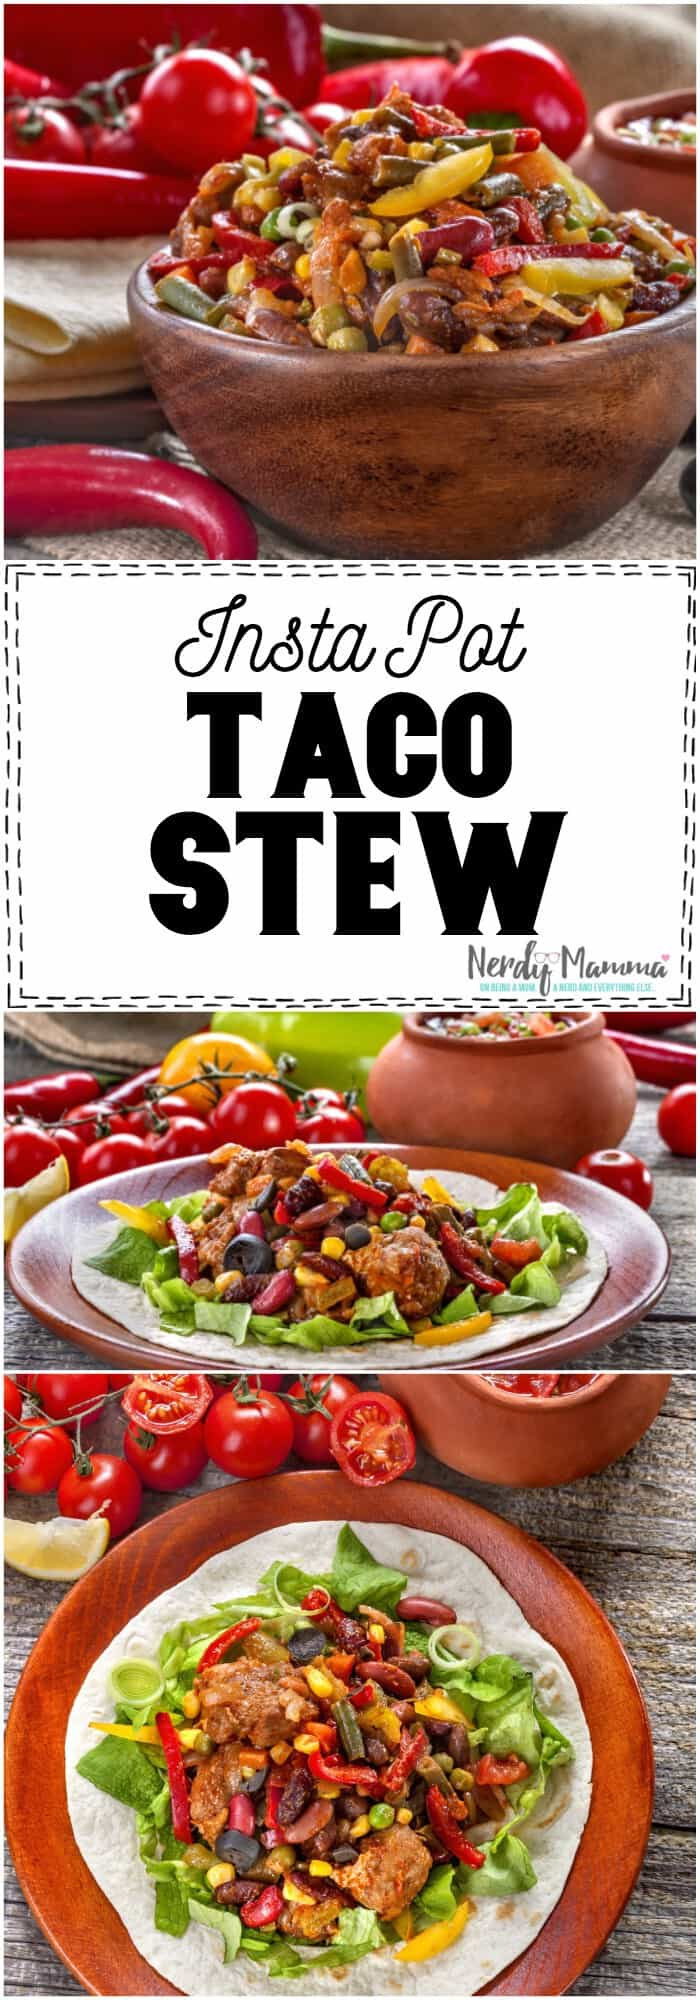 Oh, this Instant Pot taco stew sounds so easy to make and so yummy! #recipe #tasty #soup #stew #taco #mexican #instantpot #pressurecooker #slowcooker #instantpotrecipe #instantpotmexican #instantpottaco